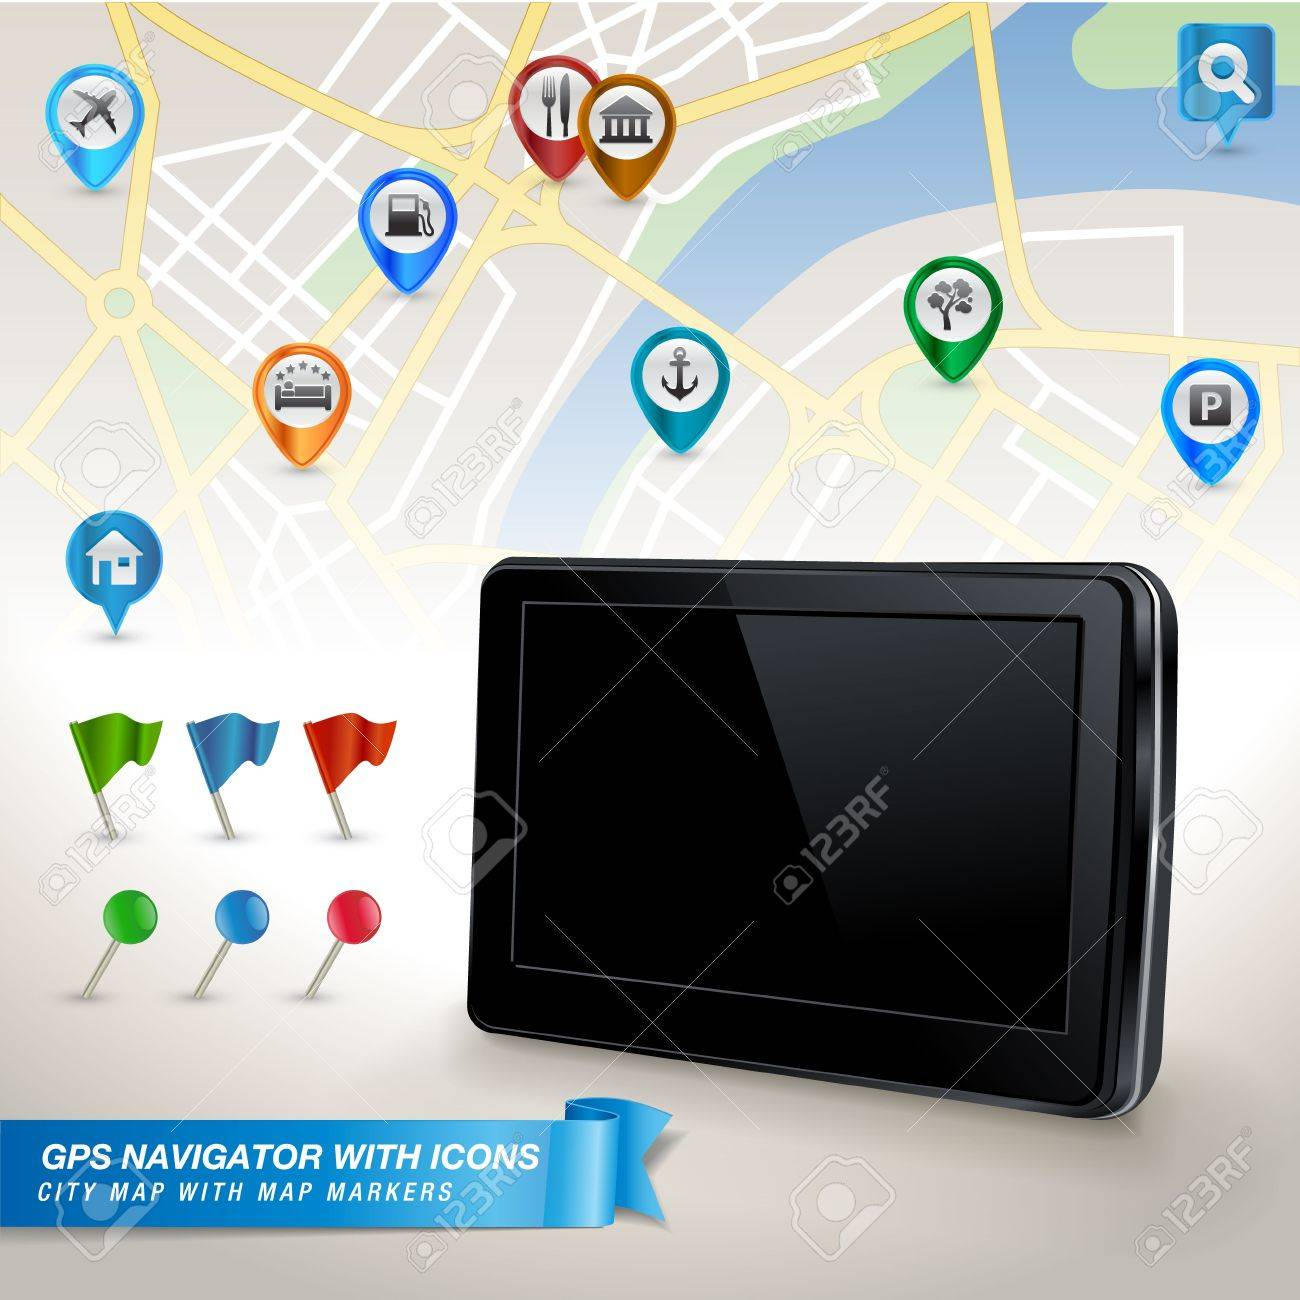 GPS navigator with city map and set of GPS icons Stock Vector - 14396462